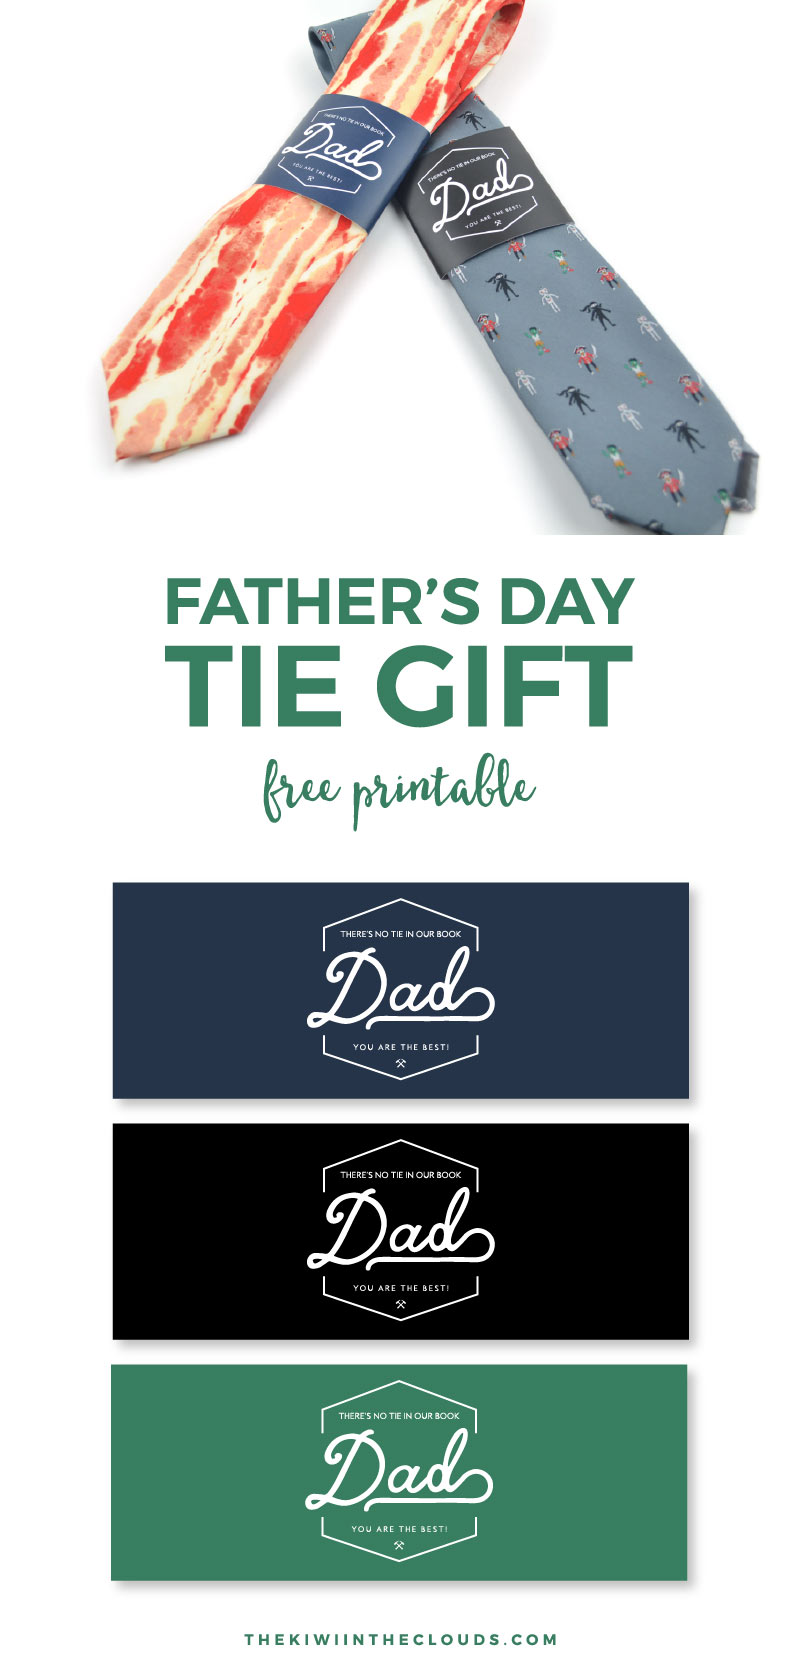 Searching for a fast Father's Day gift idea from the kids? Dad will love this one, especially when you add it to a fun, quirky tie! Click through to download your Father's Day FREE printable now.